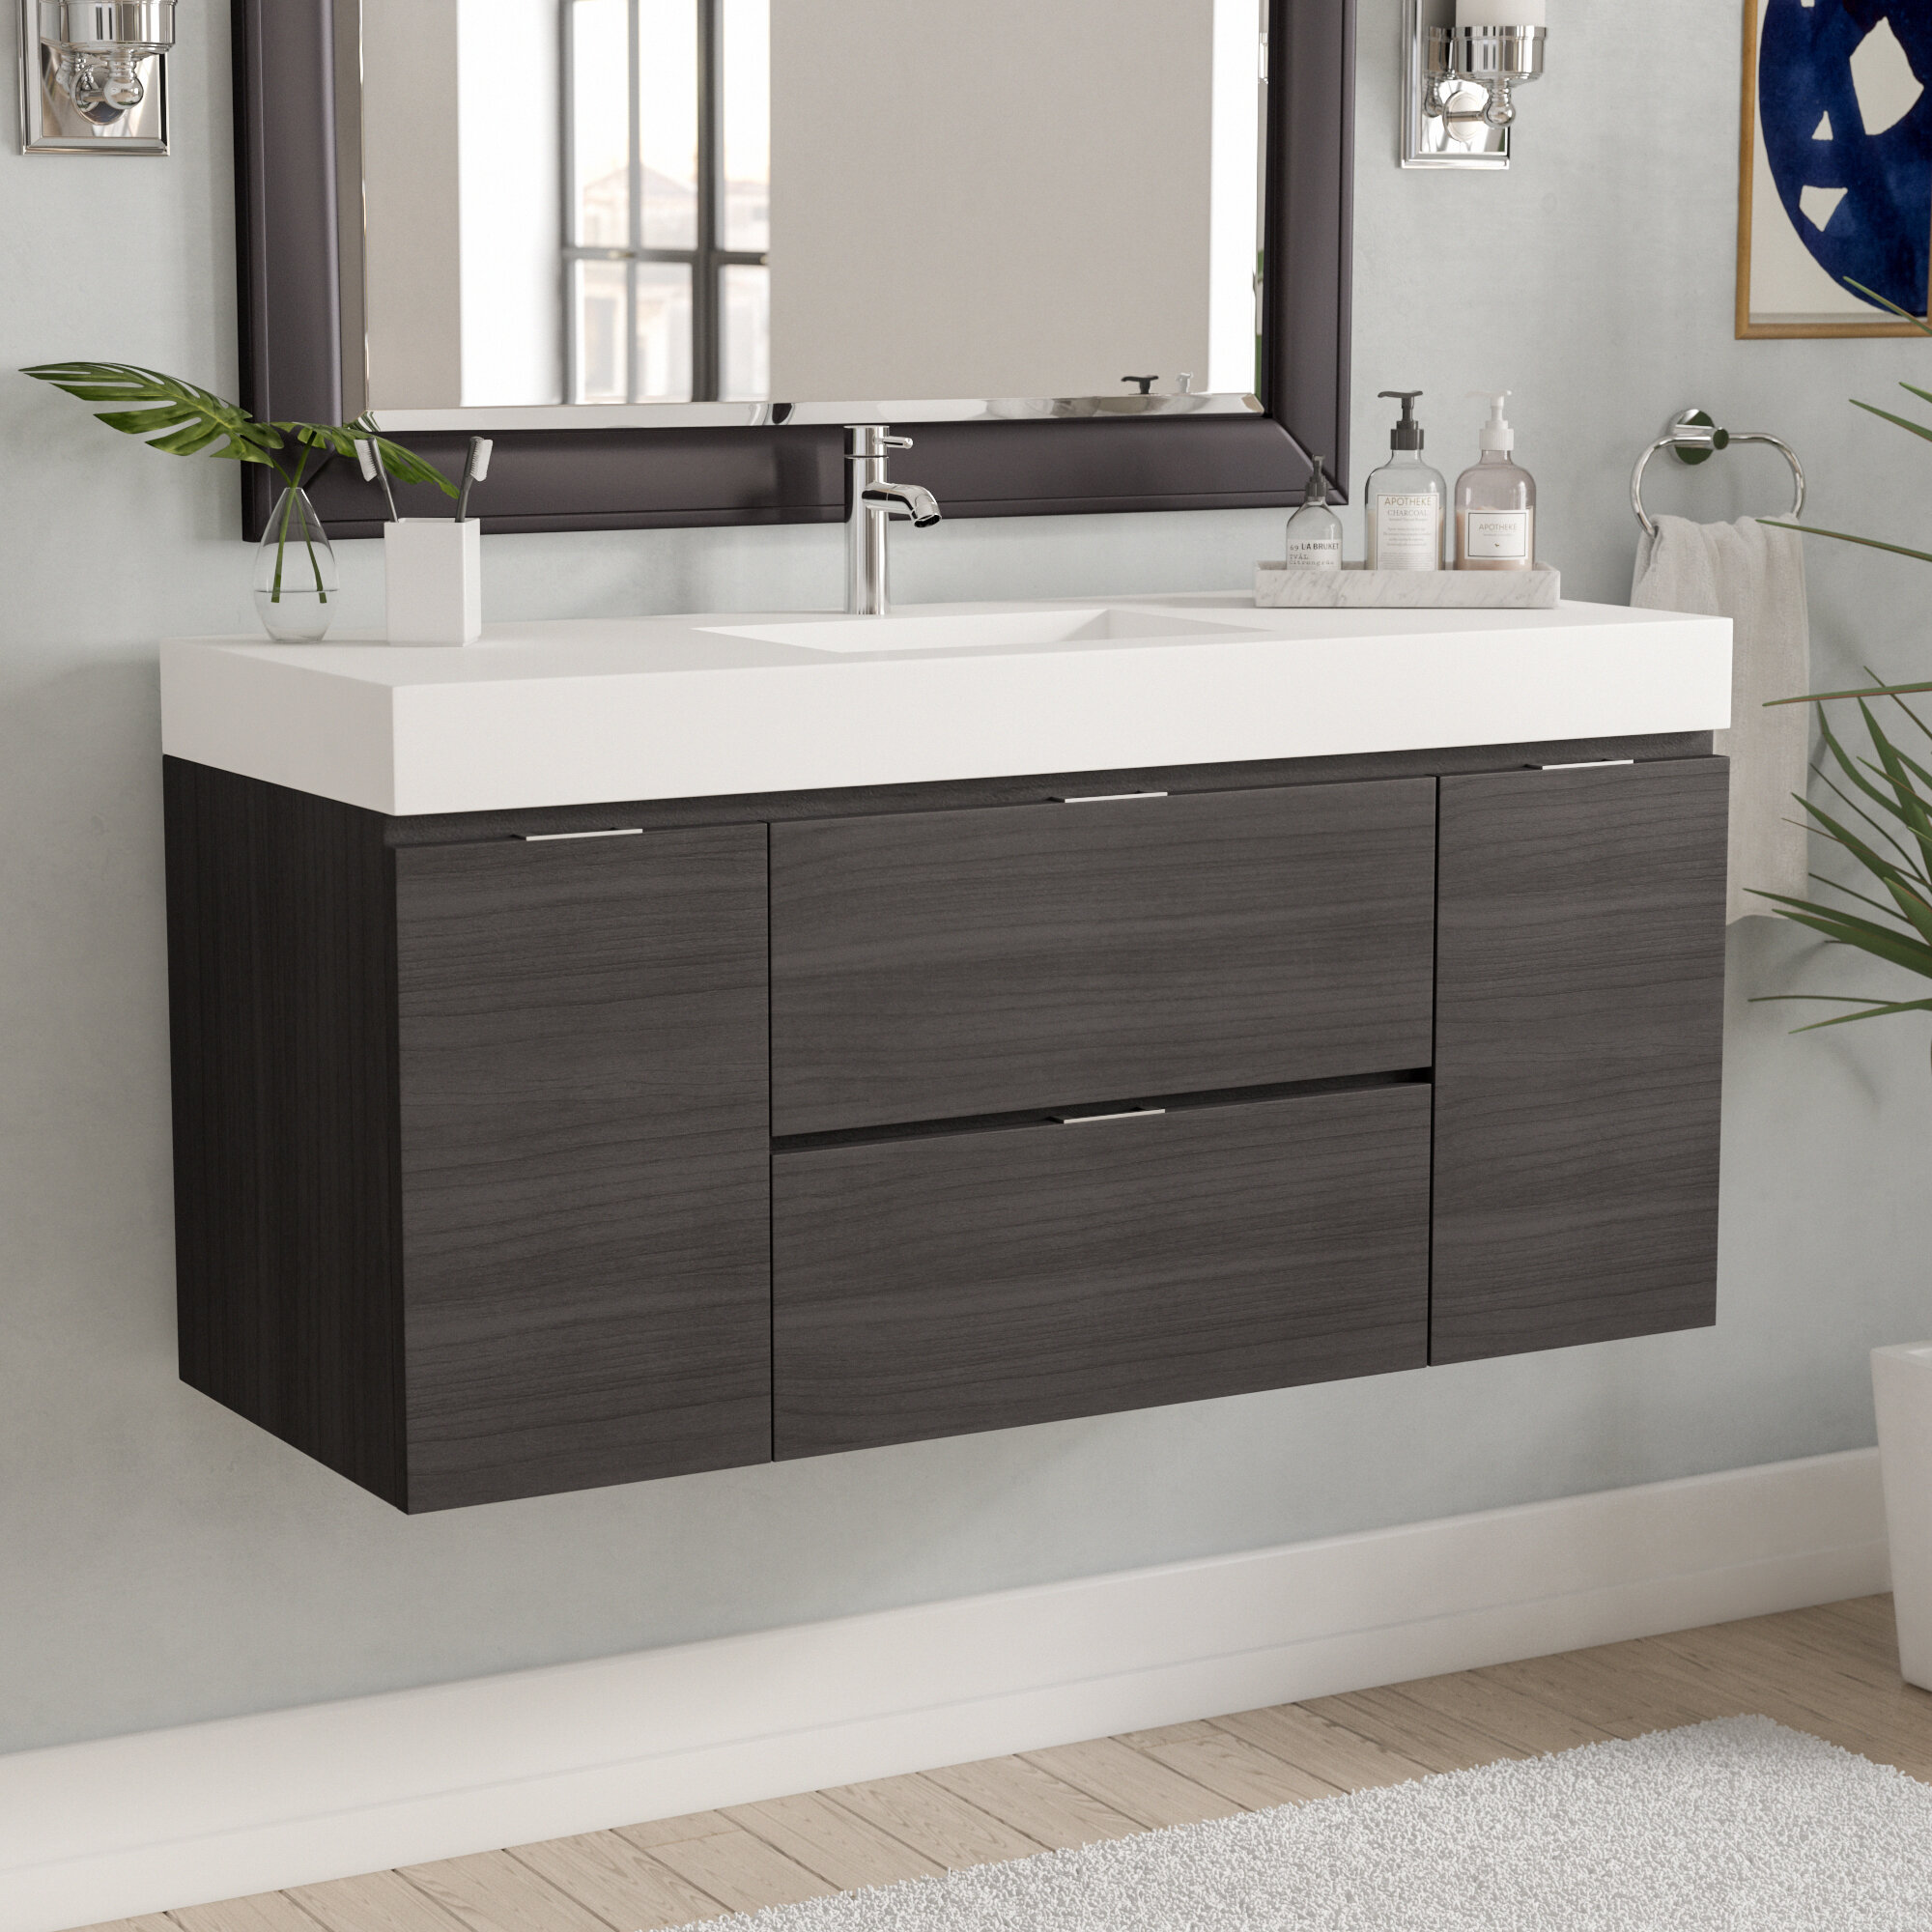 bathroom derektime proportions design to ideas drawer double drawers ideal with sink vanity regard x inch